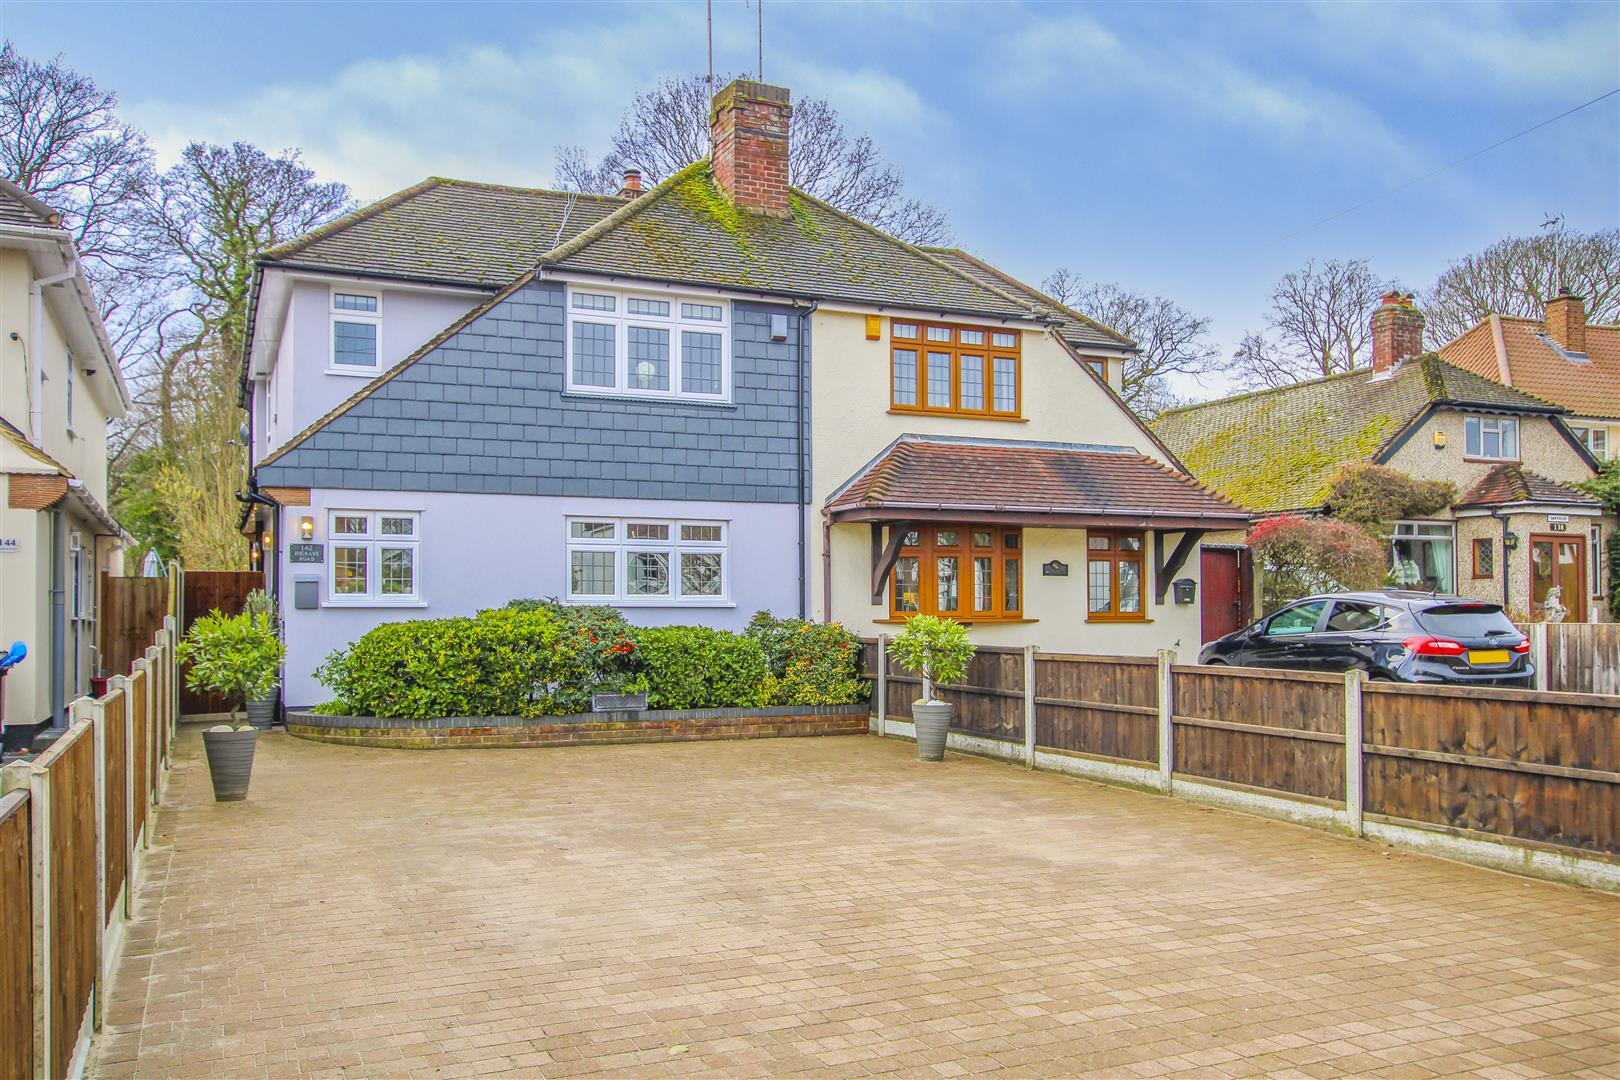 Ingrave Road, Brentwood